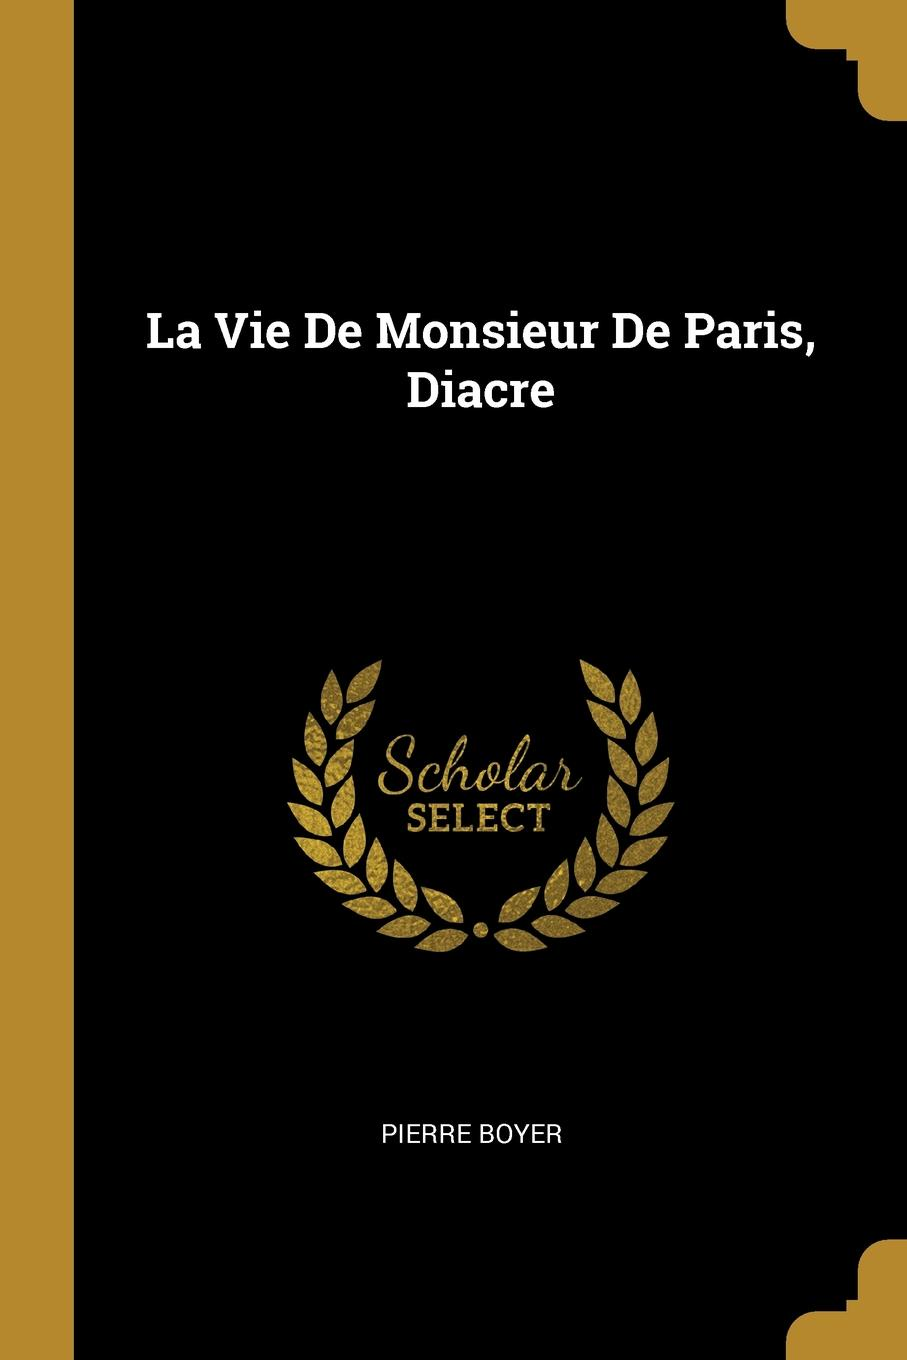 Pierre Boyer La Vie De Monsieur De Paris, Diacre